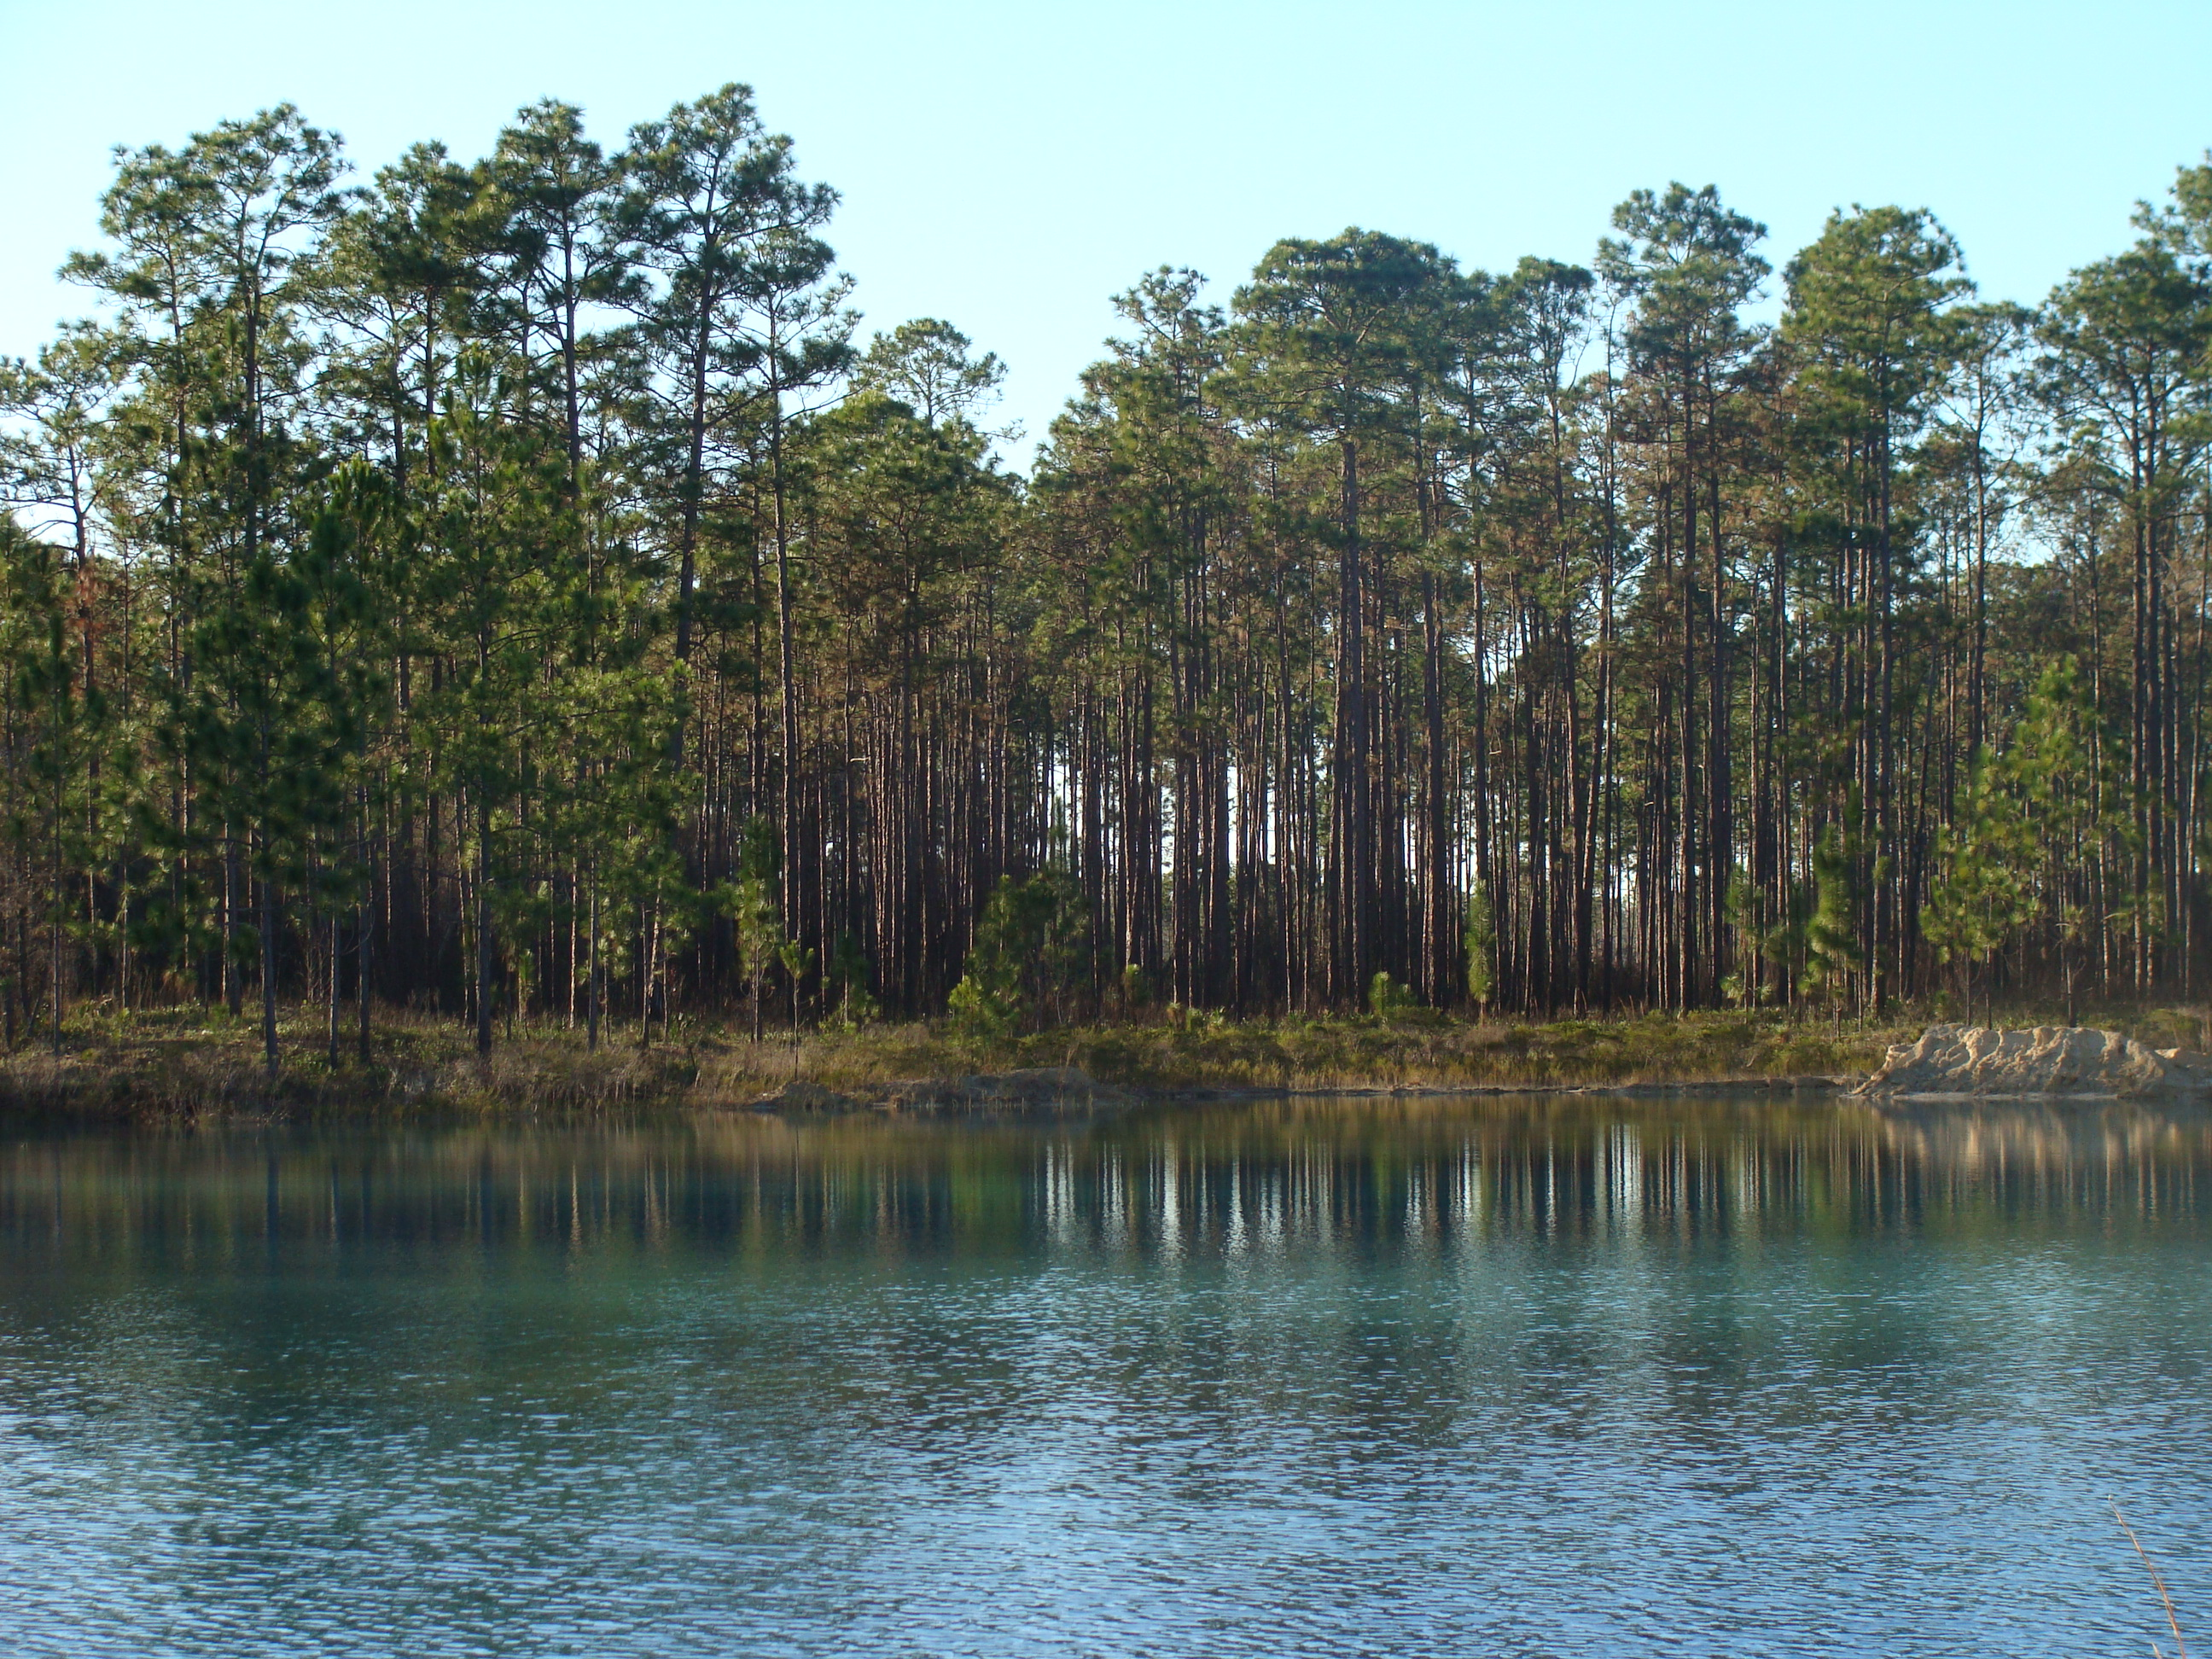 Apalachicola National Forest